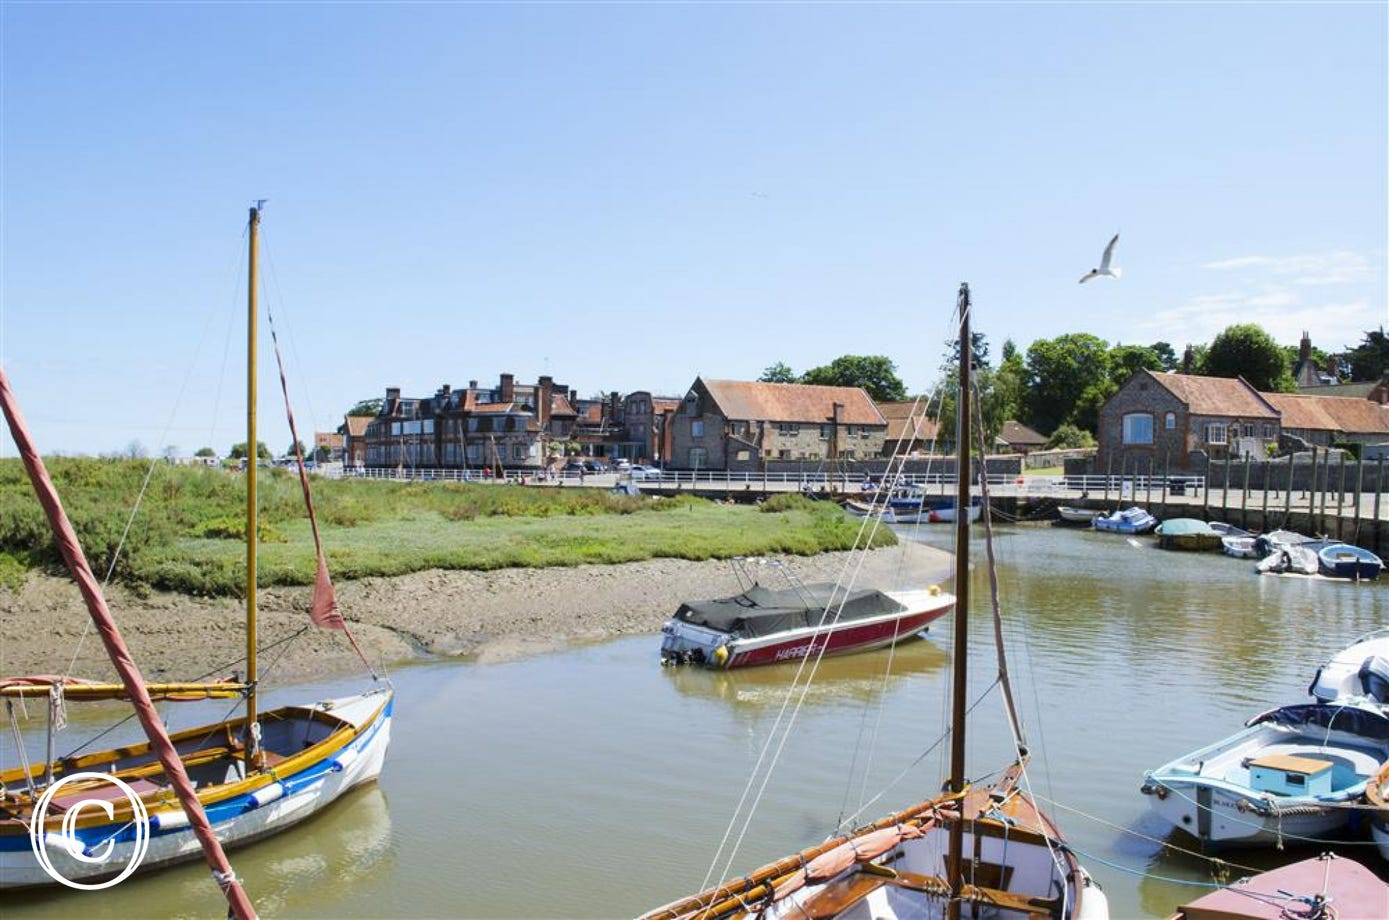 Blakeney Quay is only 2 and a half miles away or a 5 minute drive